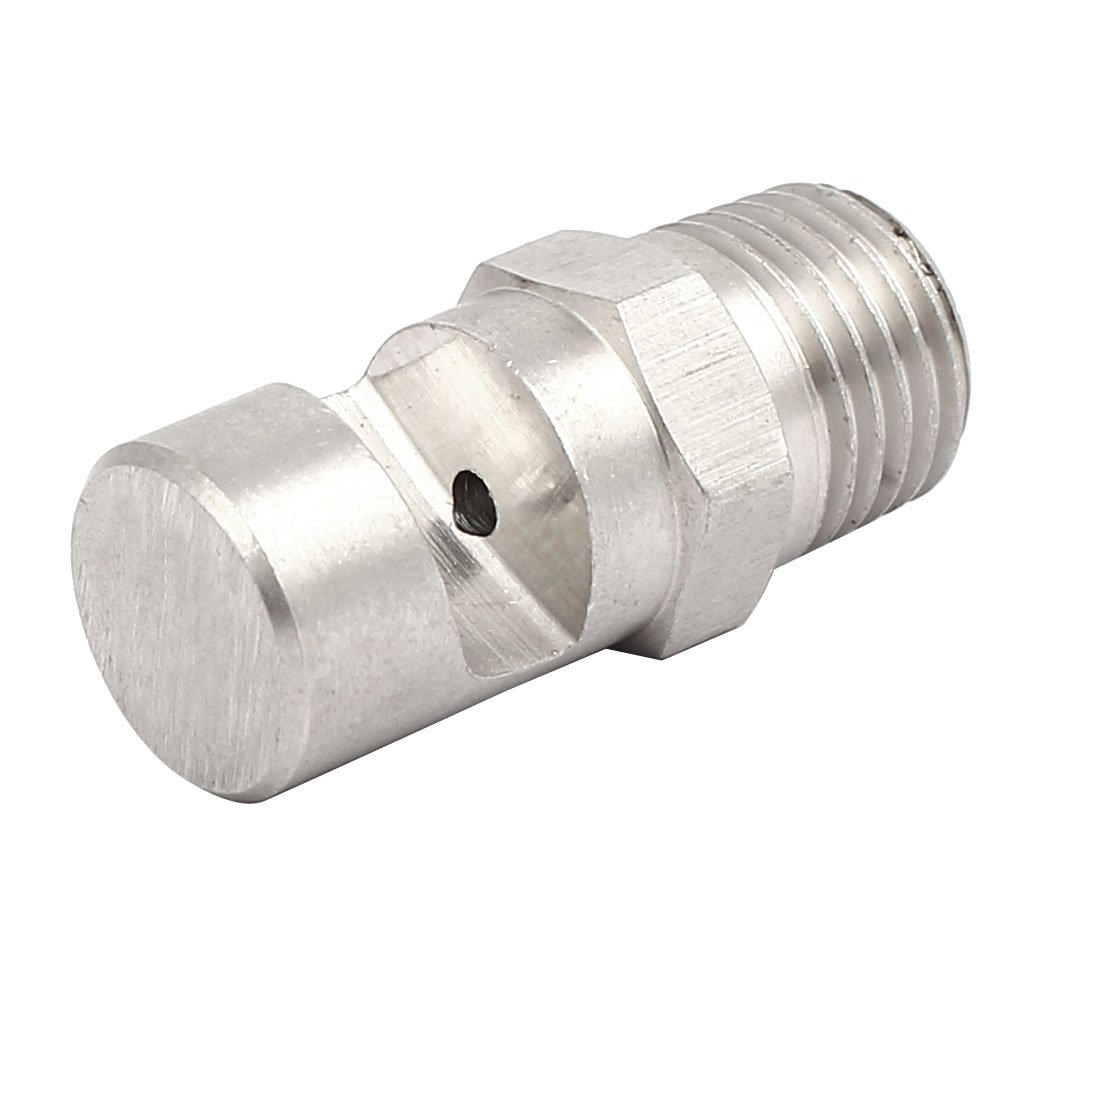 uxcell 1/4BSP 304 Stainless Steel Wide Angle Flood Jet Flat Fan Spray Tip Nozzle by uxcell